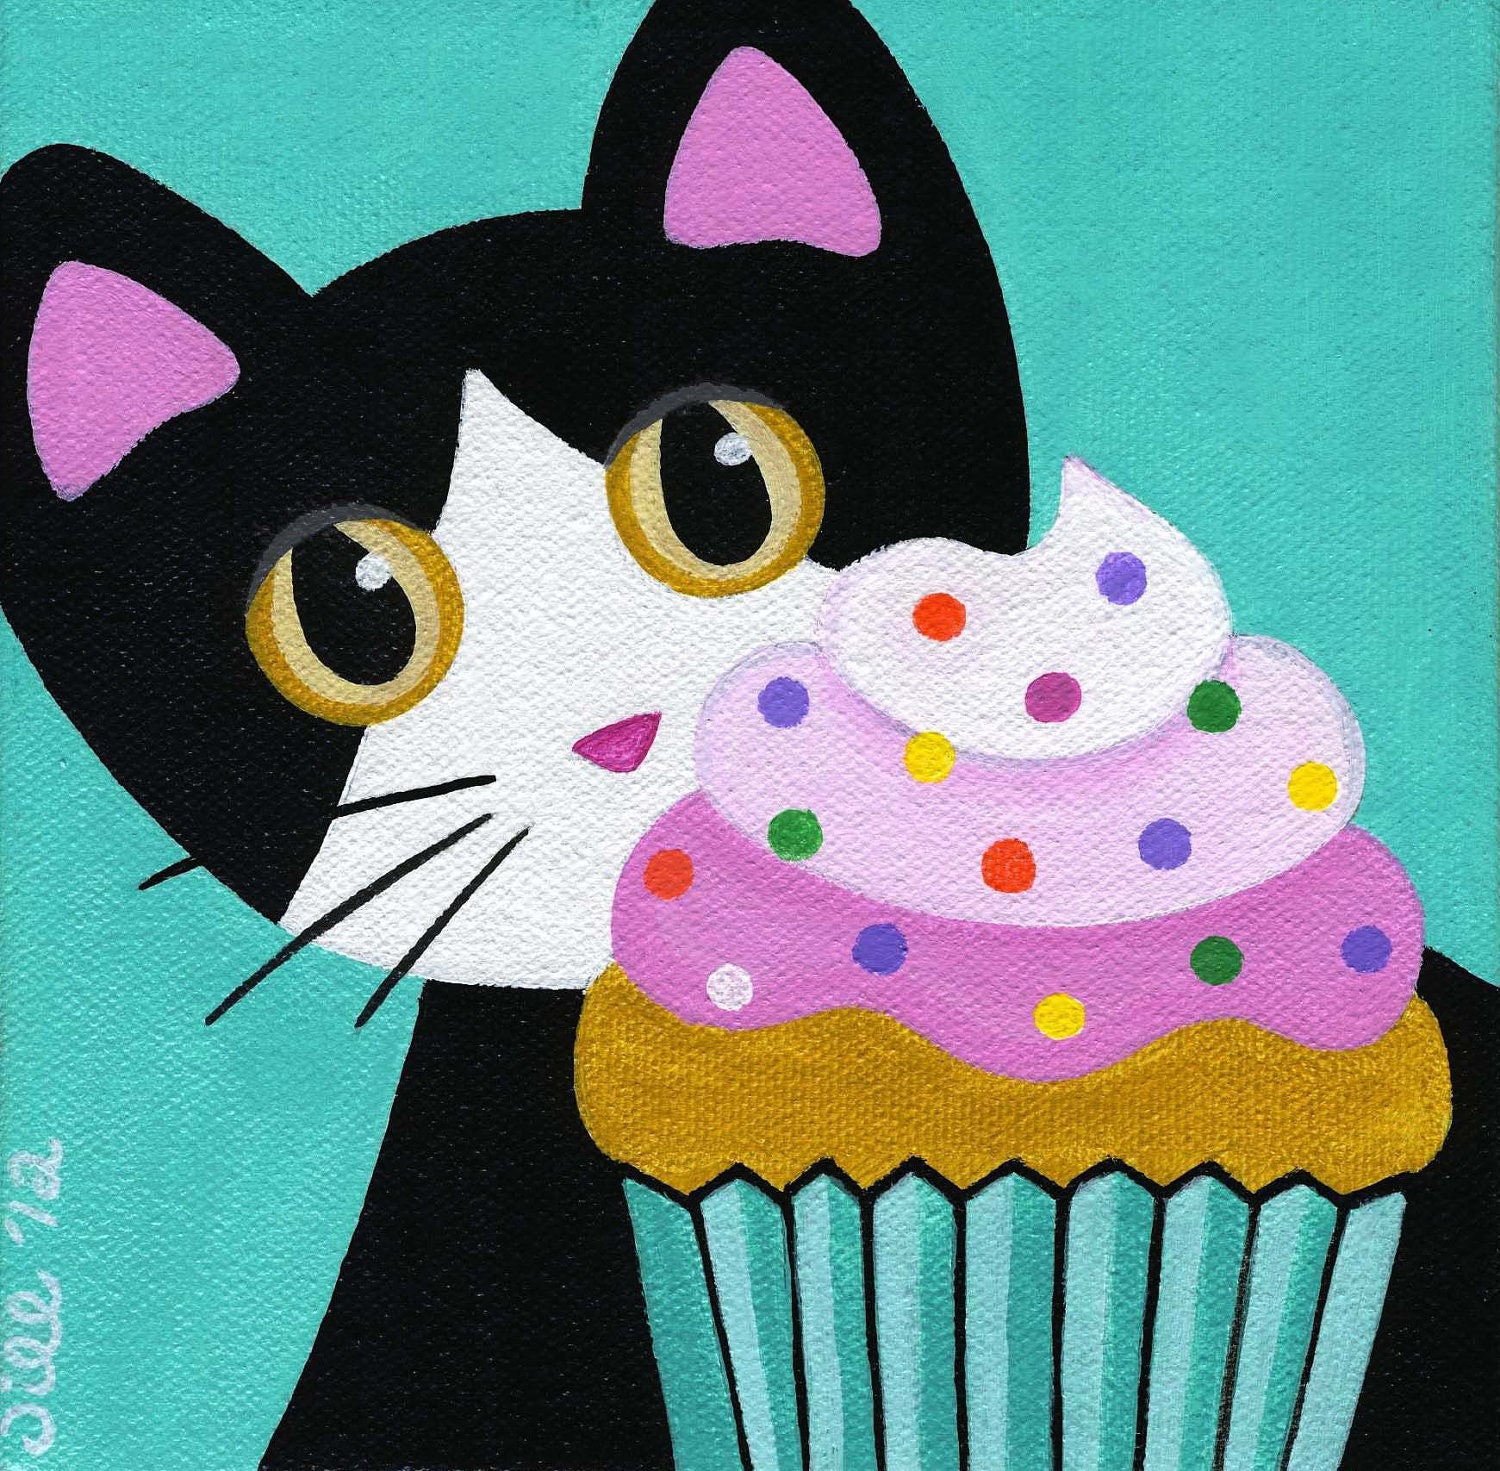 Tuxedo Cat And Cupcake With Pink Frosting Amp Sprinkles Folk Art